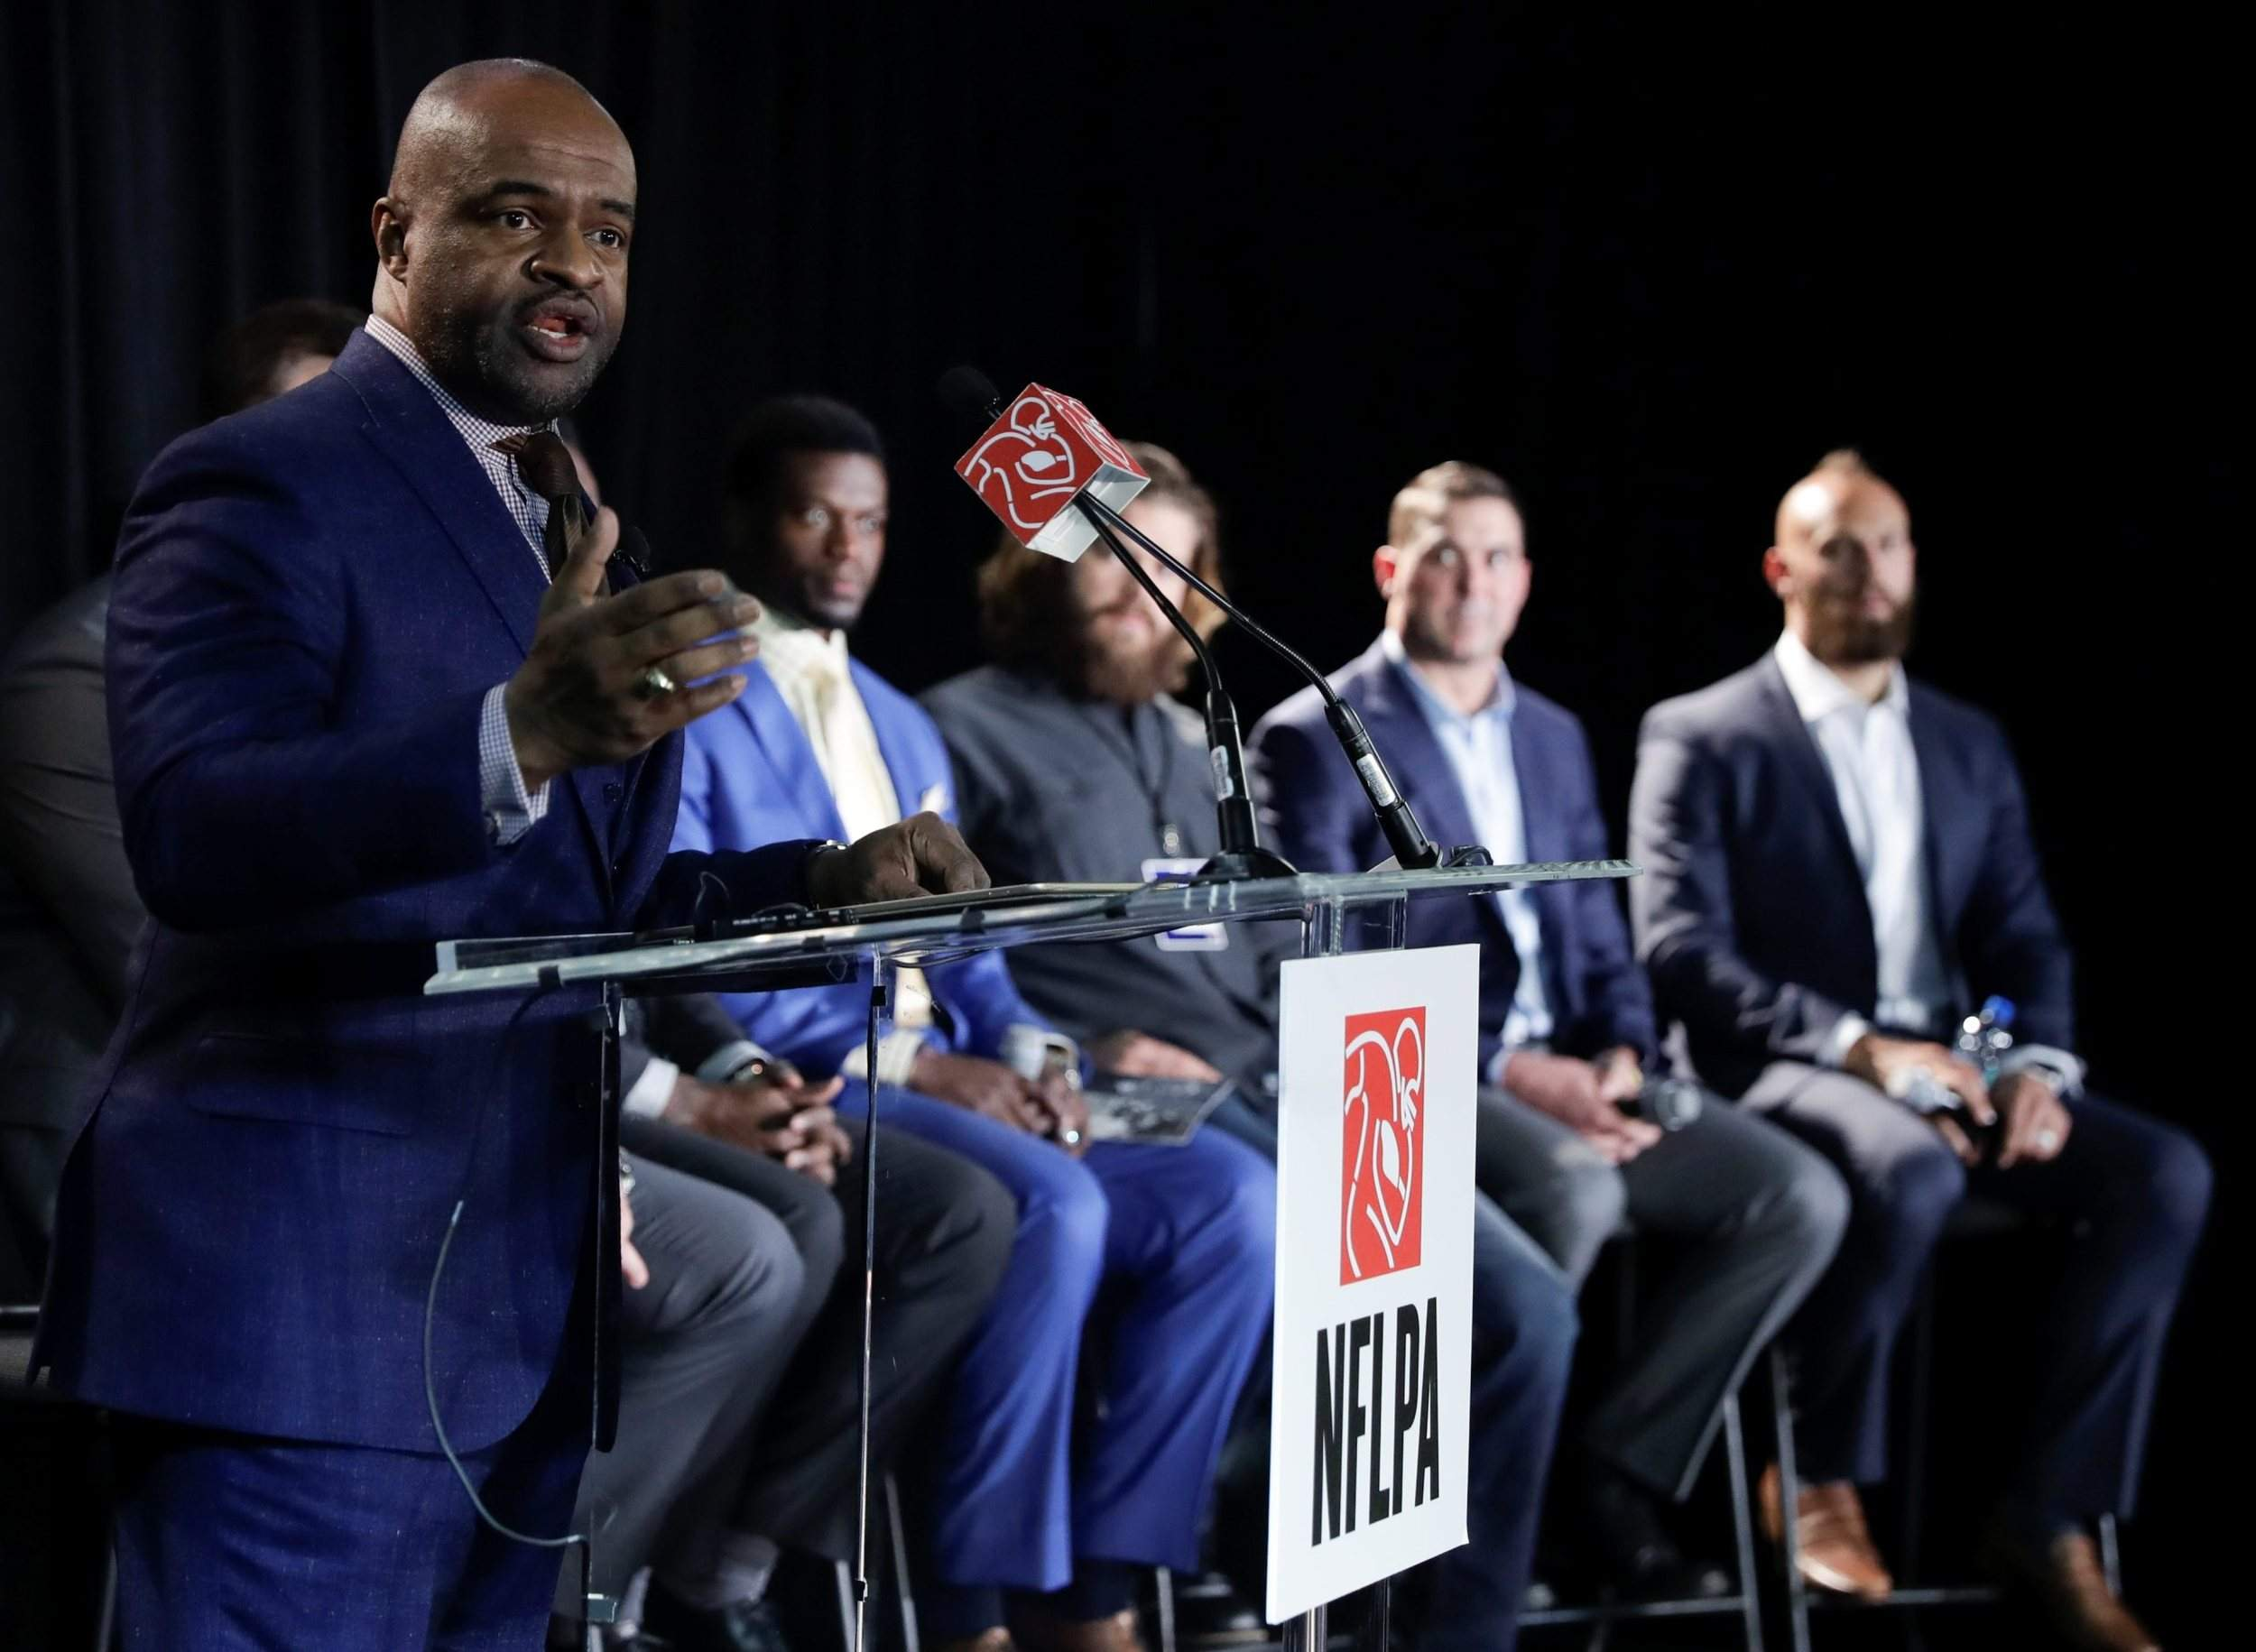 Nfl Players Ready For War In Collective Bargaining